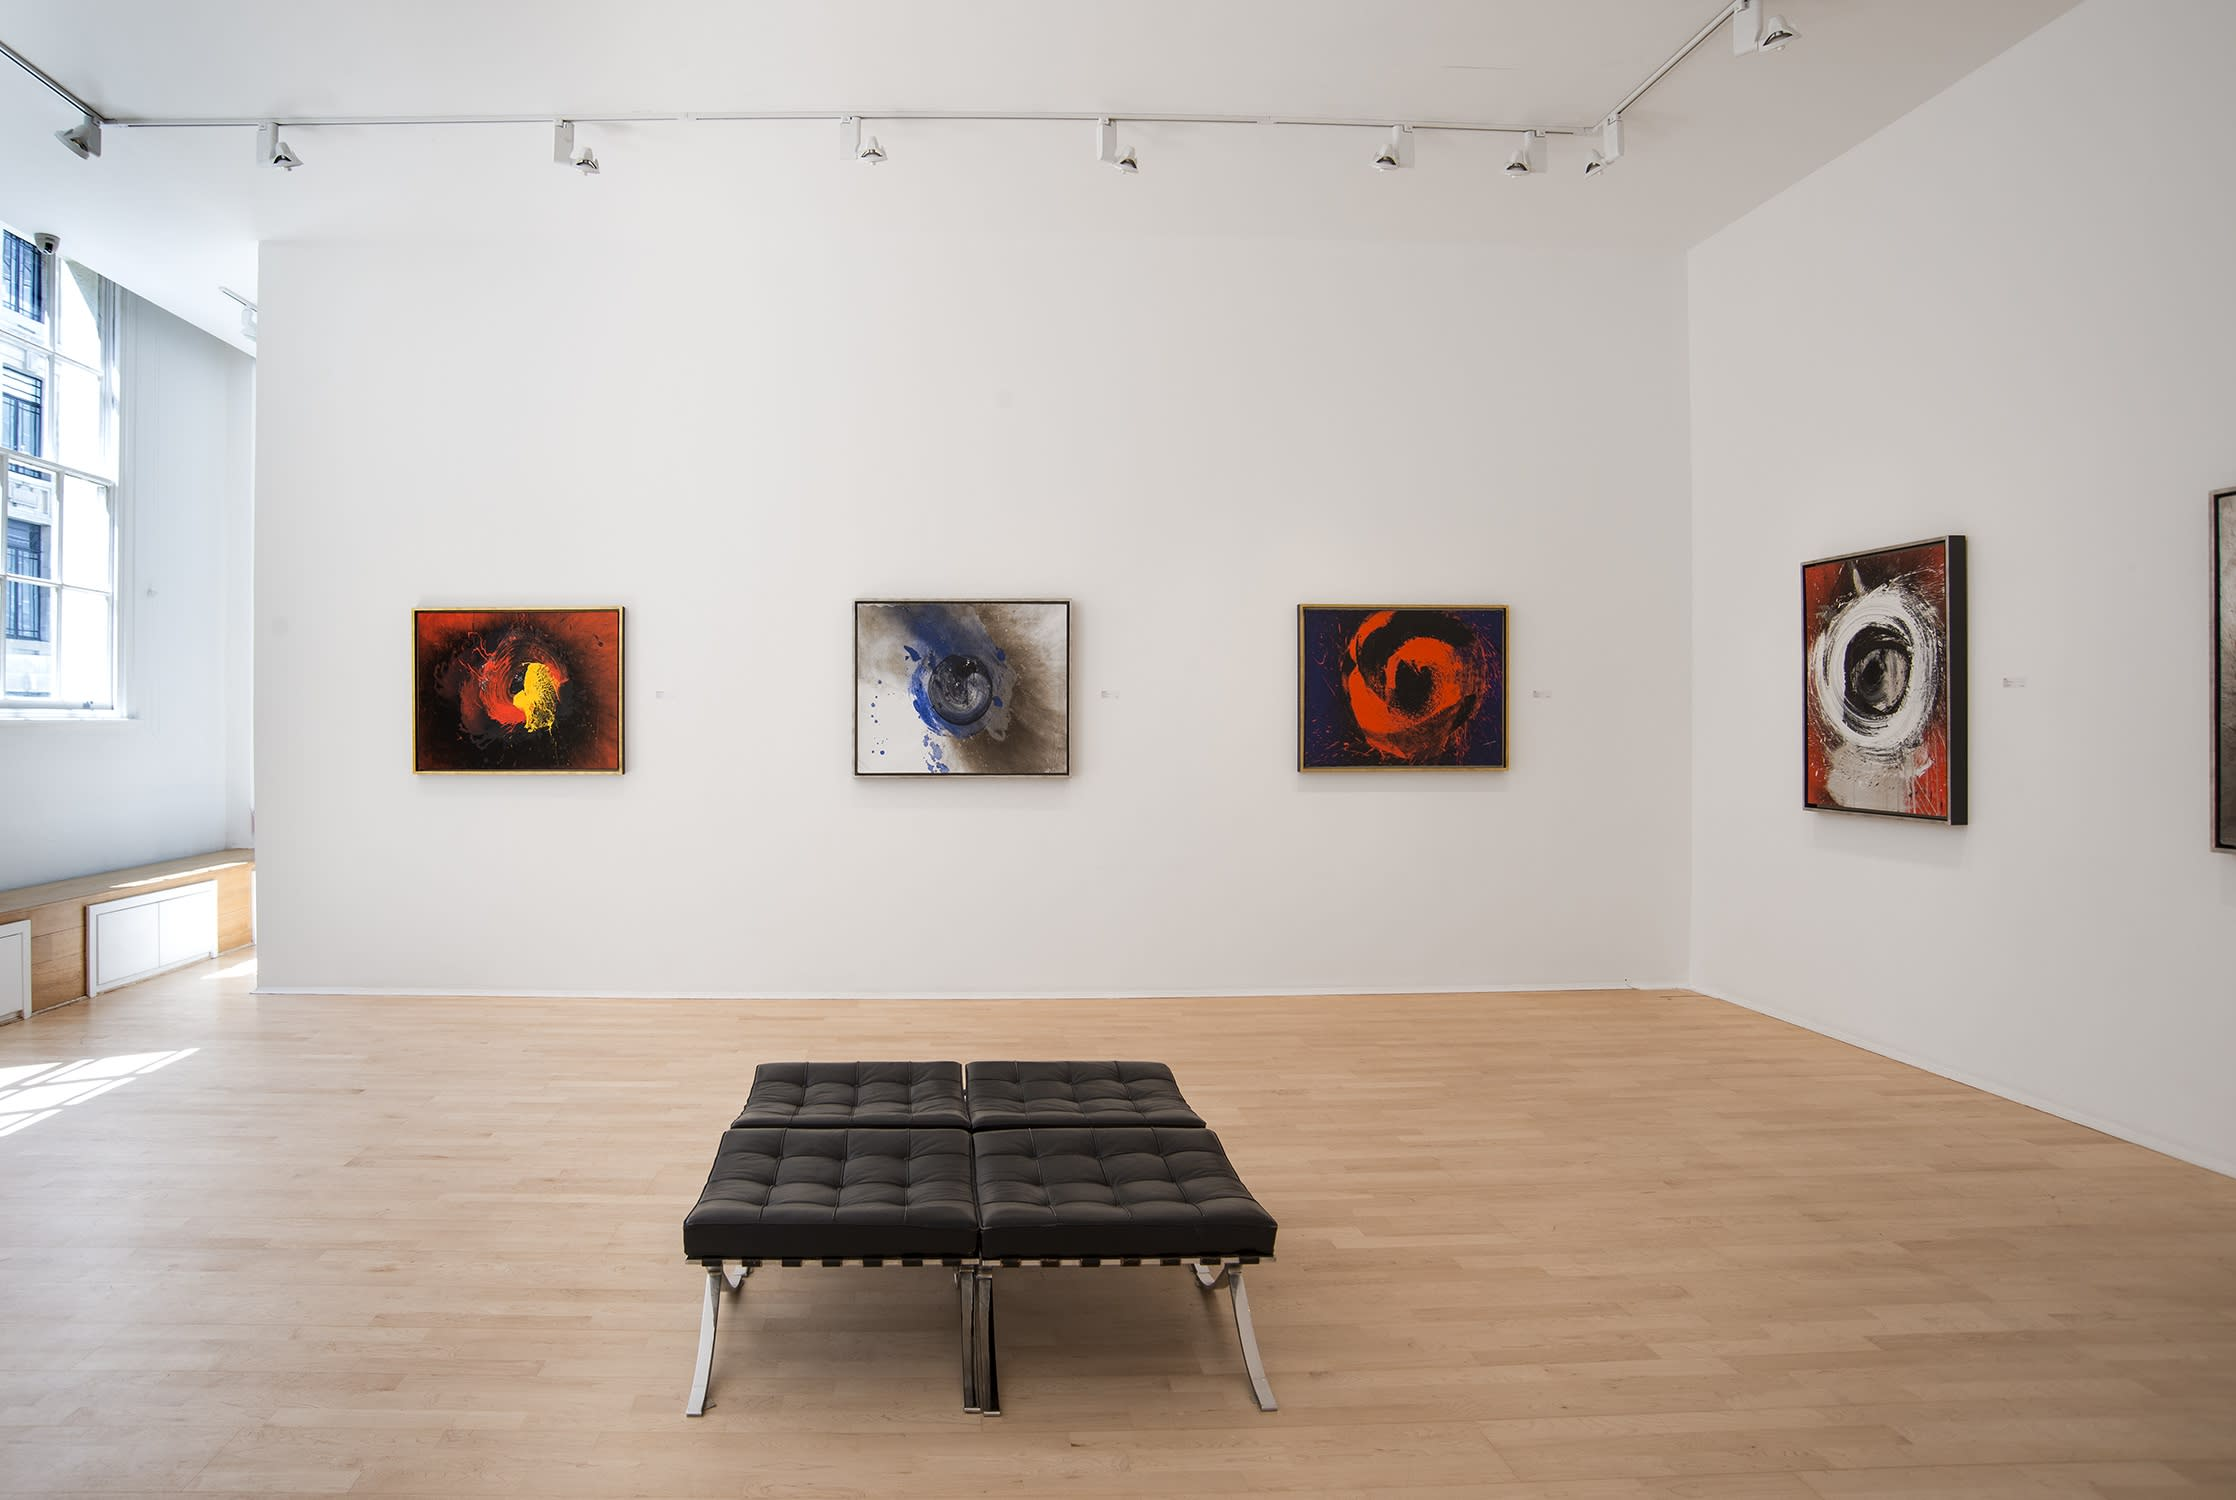 "<span class=""link fancybox-details-link""><a href=""/exhibitions/55/works/image_standalone57/"">View Detail Page</a></span><p>OTTO PIENE 